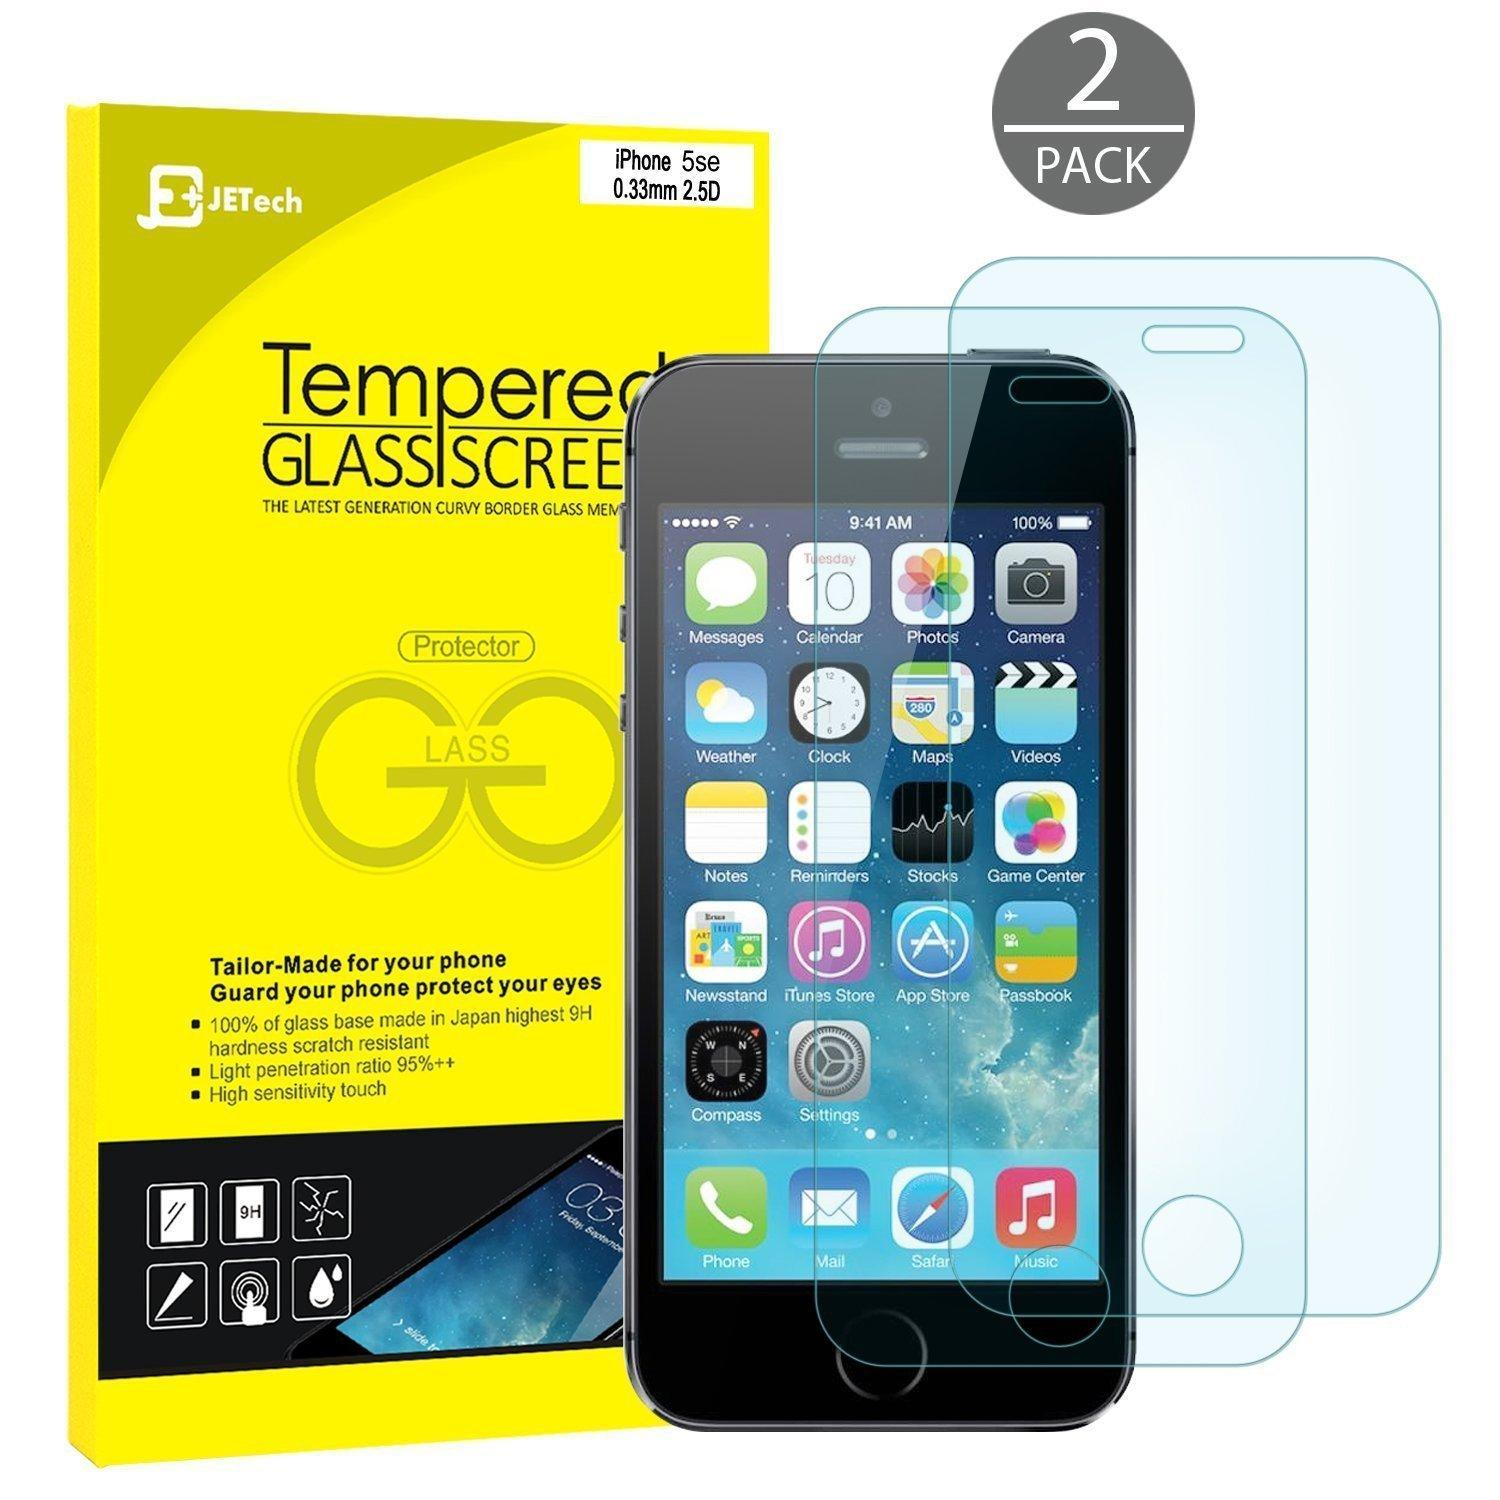 FREE JETech® Exclusively for iPhone SE 2-Pack Tempered Glass Screen Protector Film